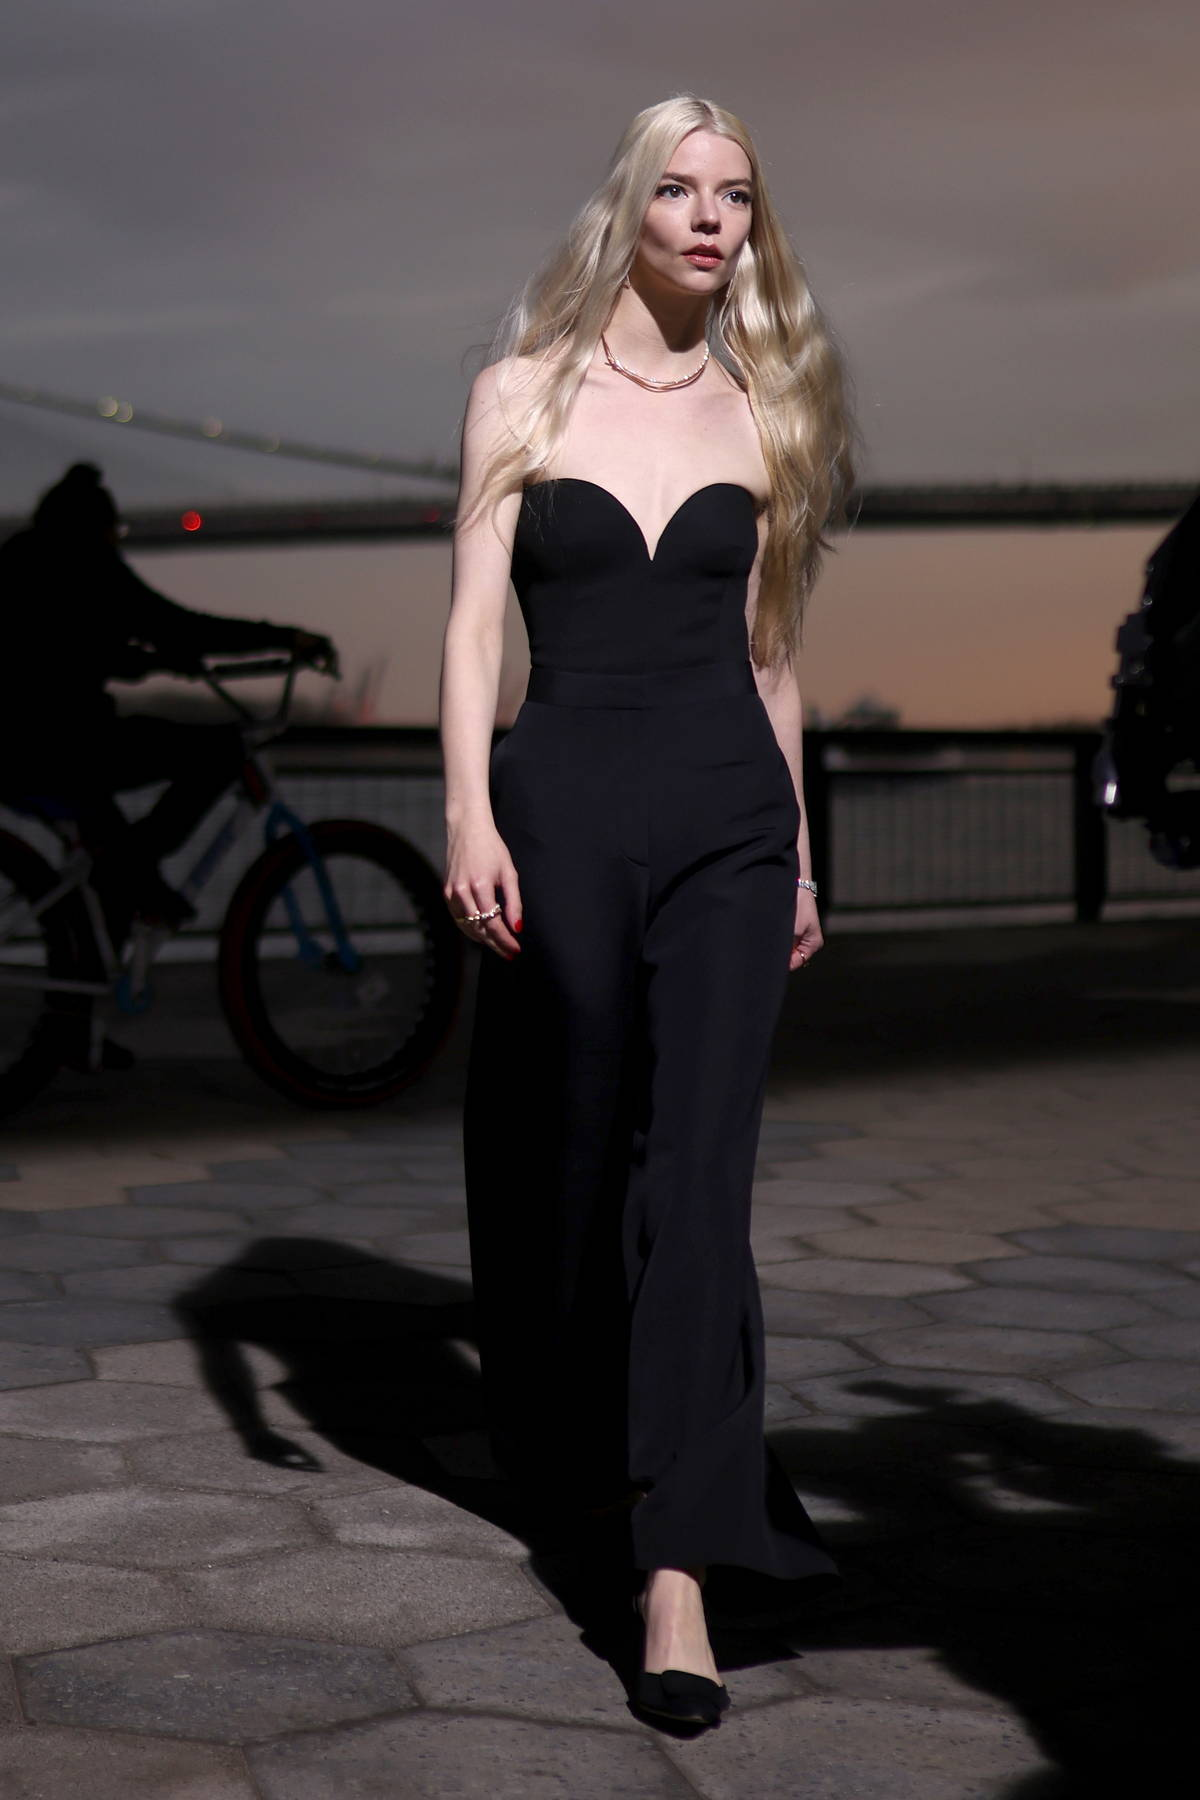 Anya Taylor-Joy looks radiant in all-black during a photoshoot for Tiffany & Co. in New York City